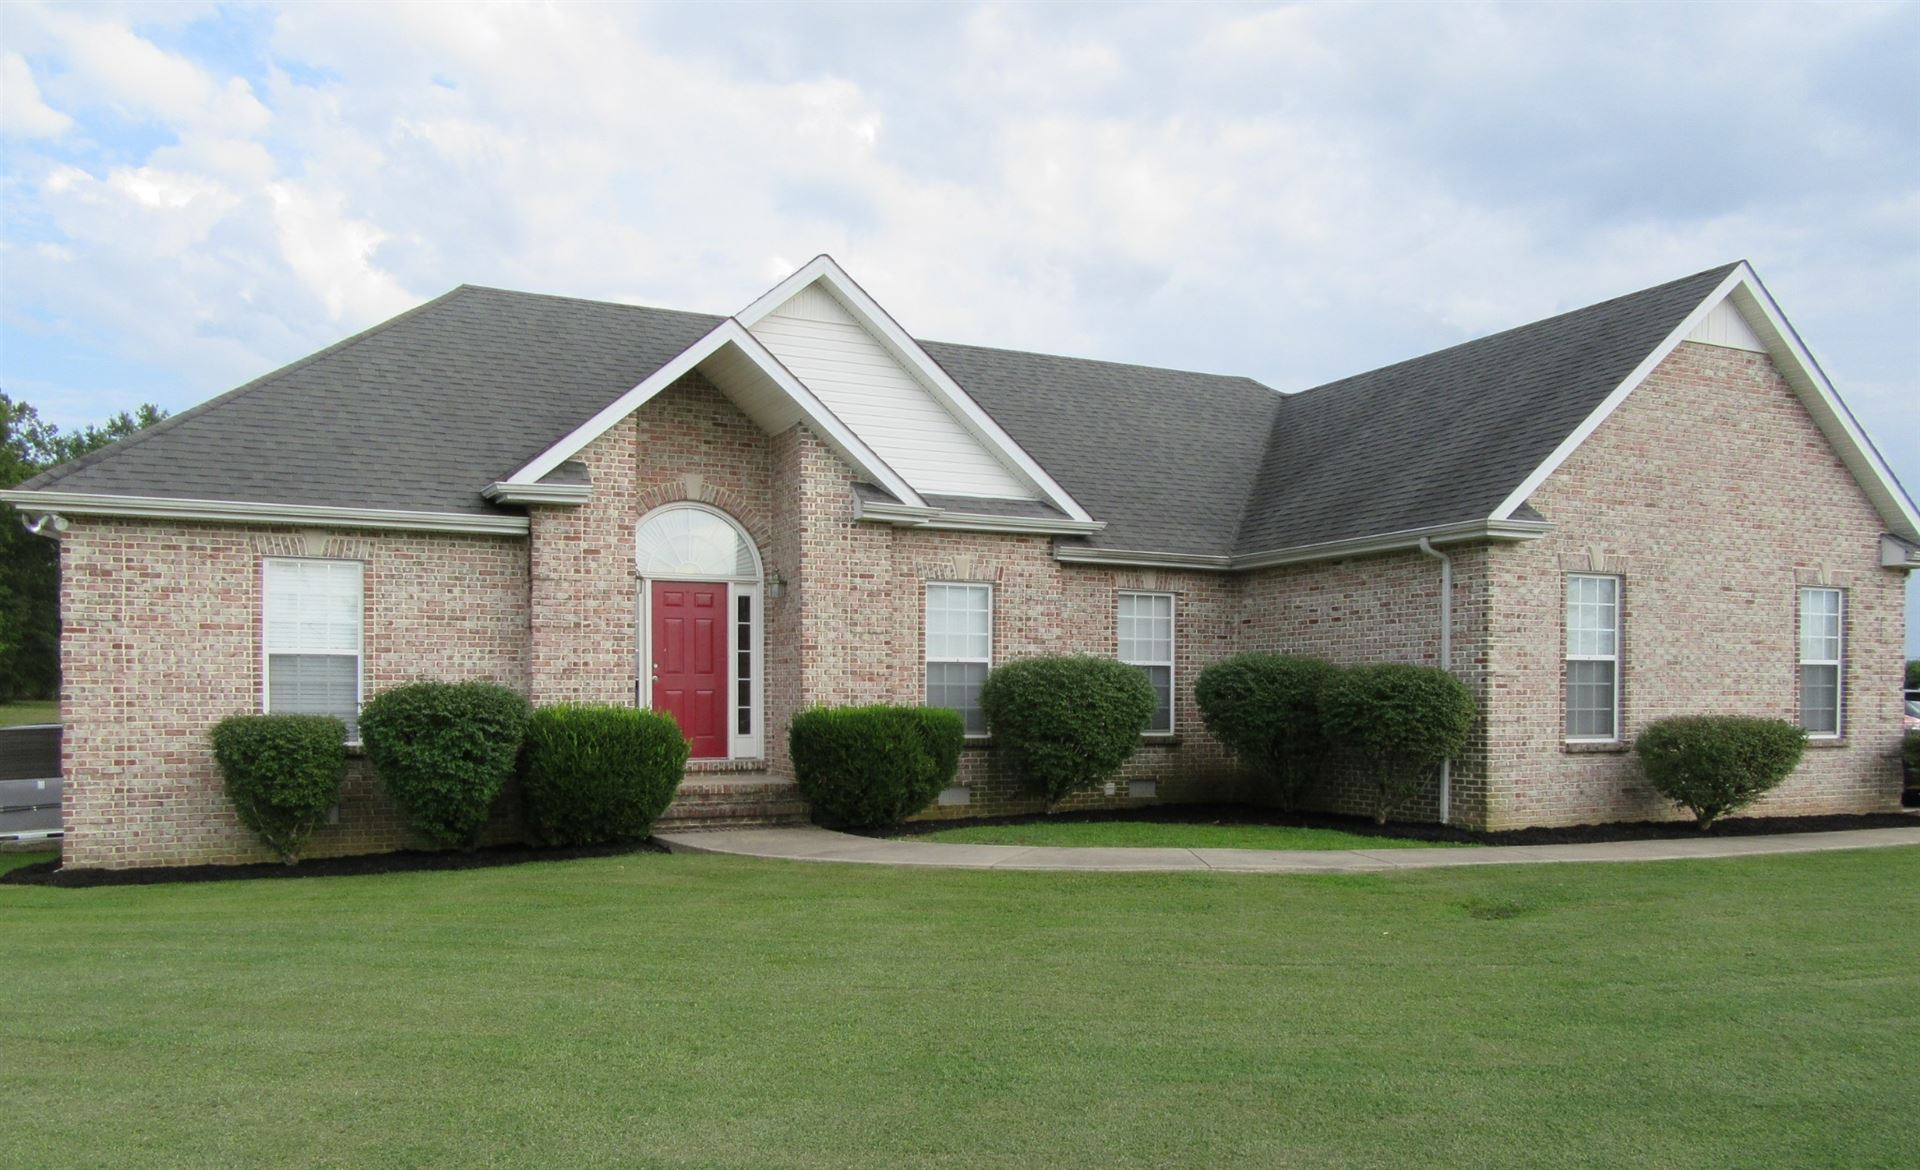 107 Droon Dr, McMinnville, TN 37110 - MLS#: 2172332